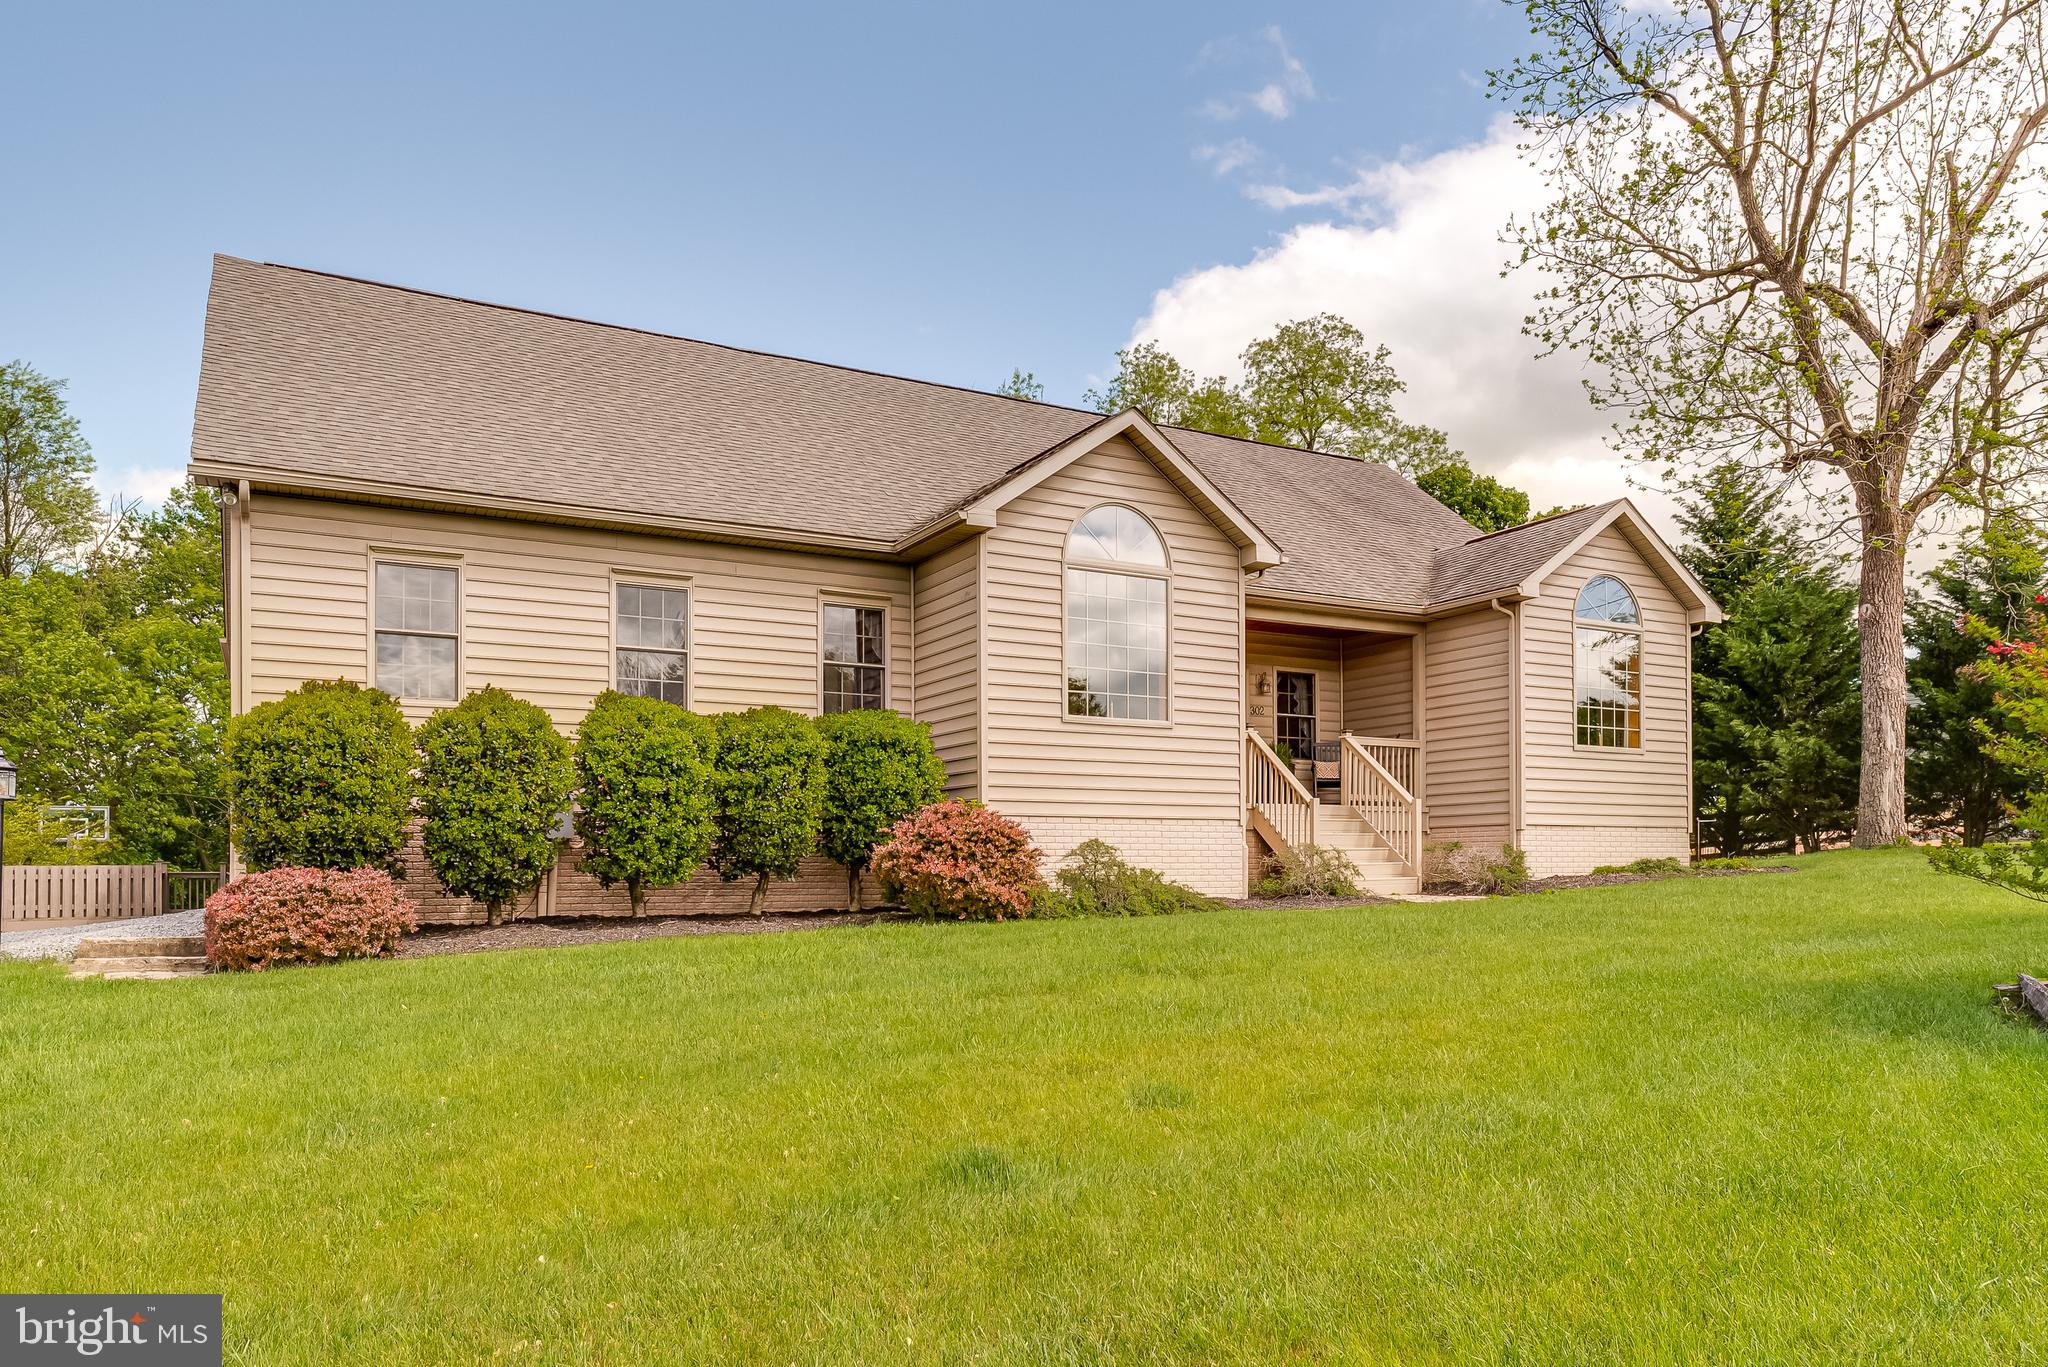 Be the second owner of this beautiful, stick built home that has so many features!  There is quality